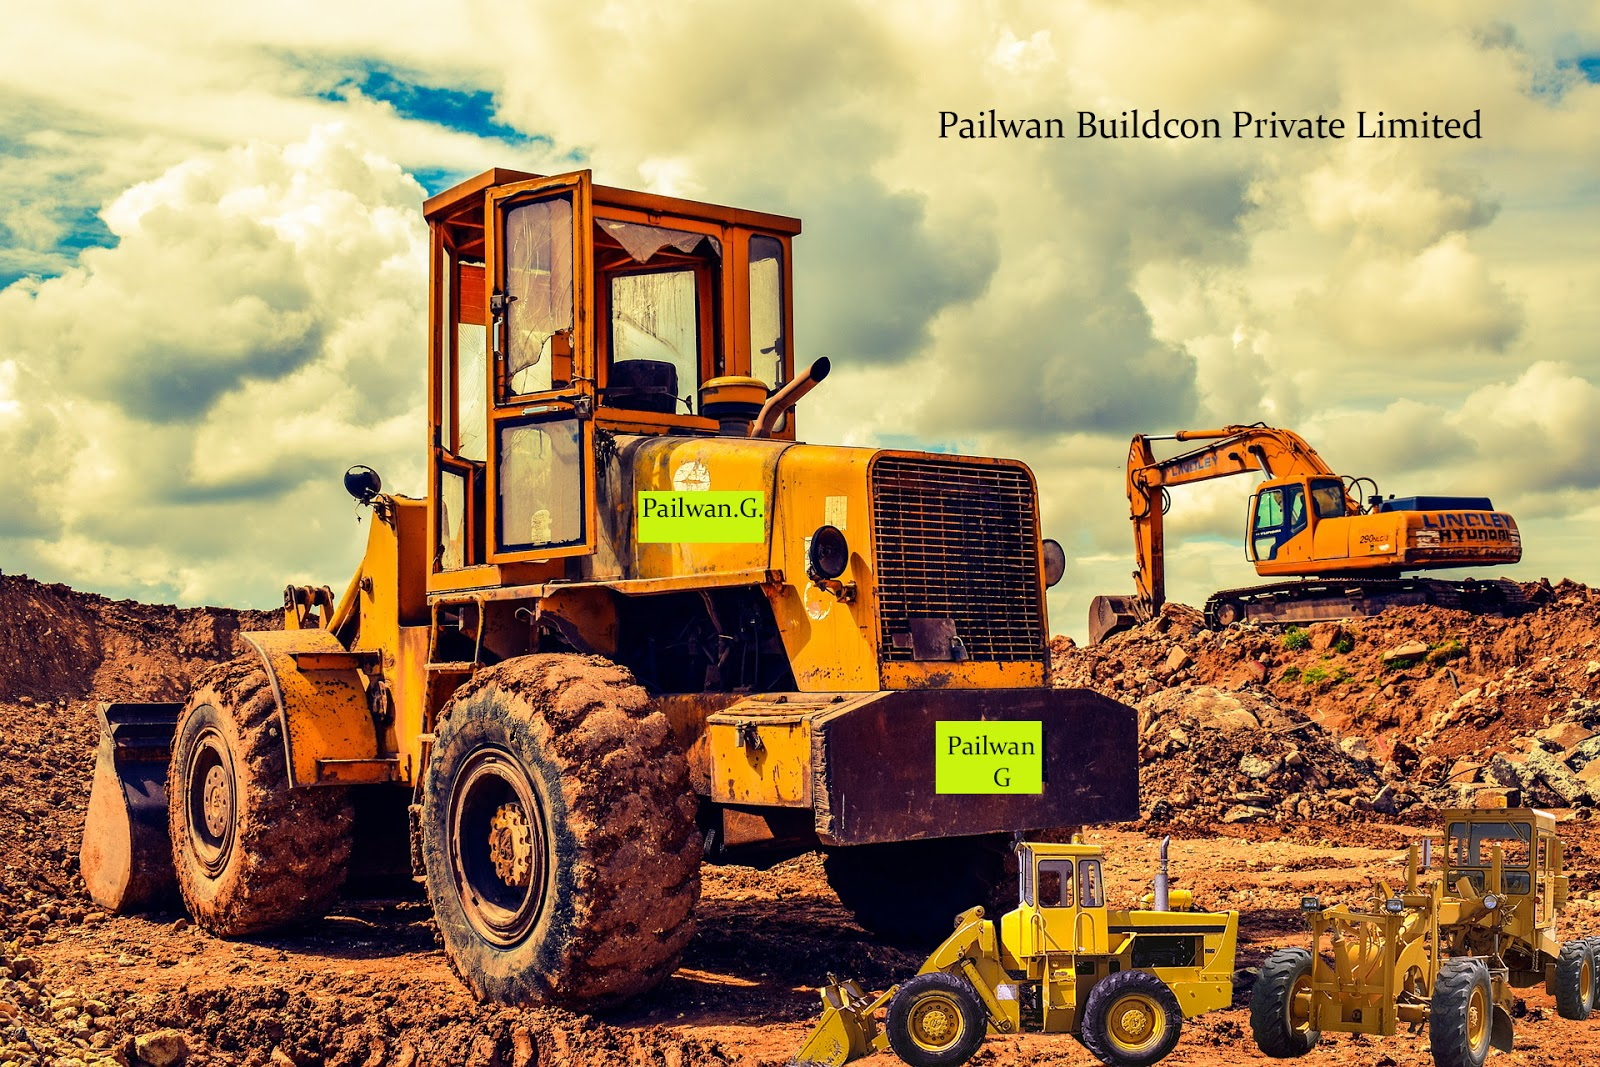 Services of Pailwan Buildcon Private Limited, Best Road Construction Company in Jamakhandi Bagalkot Karnataka,Best Road Contractor in Jamakhandi Bagalkot Karnataka,Best Building Contractors in Jamakhandi Bagalkot Karnataka,Best Civil Contractors in Jamakhandi Bagalkot Karnataka,Best Contractors in Jamakhandi Bagalkot Karnataka,Best Excavating Service Company in Jamakhandi bagalkot Karnataka,Best General Contracting Company in Jamakhandi bagalkot Karnataka,Best Mine Development Company in Jamakhandi Bagalkot Karnataka,Best Water Lines Construction Company in Jamakhandi Bagalkot Karnataka,Best Sewer Lines Construction Company in Jamakhandi Bagalkot Karnataka,Best Logging Service Company in Jamakhandi Bagalkot Karnataka,Best Logging Service Company in Jamakhandi Bagalkot Karnataka,Best Drilling and Blasting Service Company in Jamakhandi Bagalkot Karnataka,Best Clearing and Hauling Service Company in Jamakhandi Bagalkot Karnataka,Best Envirocleanup  Service Company in Jamakhandi Bagalkot Karnataka, contractors in Karnataka, road contractors in Karnataka, civil contractors in Karnataka, civil contractors in bagalkot, civil contractors in jamakhandi, civil contractors in athani, civil contractors in near me, road construction contractors in Karnataka, road construction contractors in jamakhandi, road construction contractors in bahalkot, road construction contractors in bijapur, road construction contractors in athani, top contractors in Karnataka, top contractors in jamakhandi, top contractors in bagalkot, top contractors in athani, top civil contractors in jamakhandi, top civil contractors in belagavi, top civil contractors in athani,  water supply contractors in Karnataka, water supply contractors in jamakhandi,  water supply contractors in bagalkot, waterproofing contractors in jamakhandi, waterproofing contractors in Karnataka, waterproofing contractors, road building materials, road building equipments, road building equipments for rent, road building equipments in jamakhandi, road building bagalkot, road building excavator, general contractors, mine development, excavating in jamakhandi,